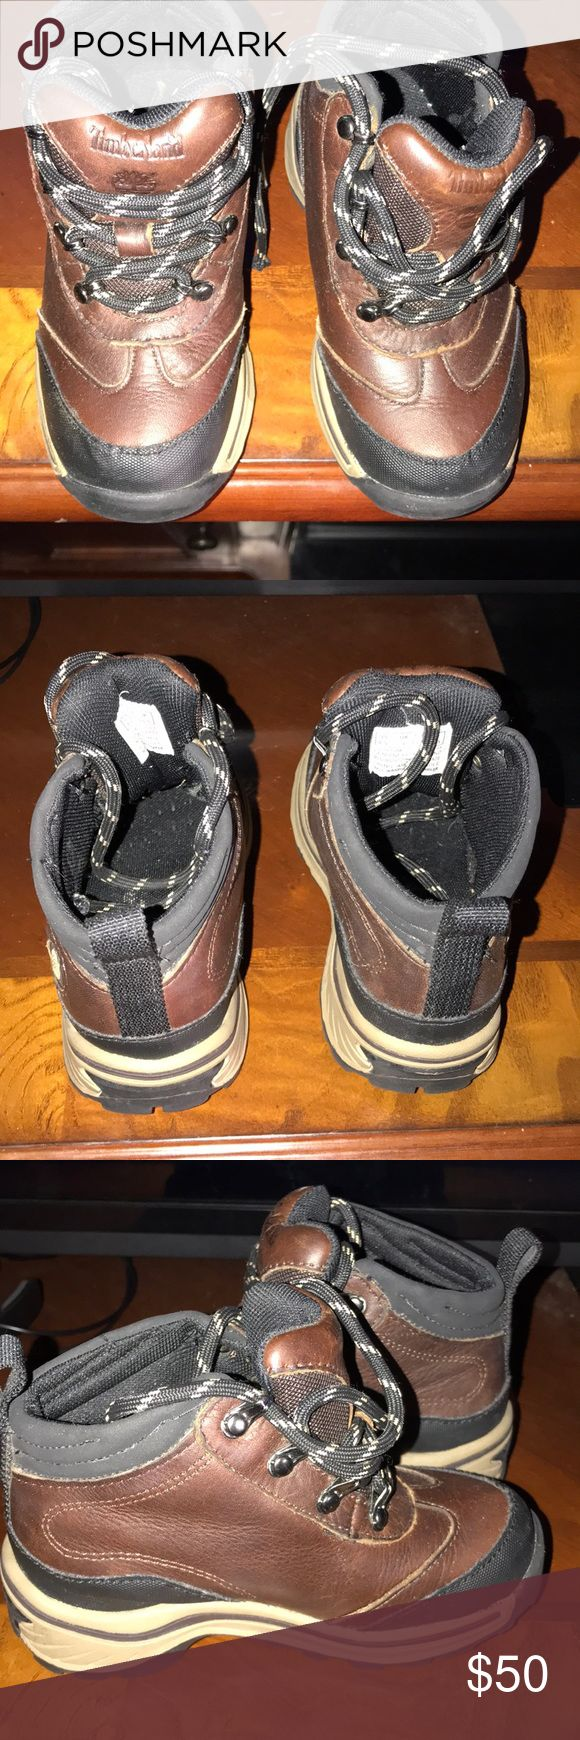 Boys timberland boots Boys size 8.5 brown and black timberland boots. Only worn a hand full of times. In excellent condition. Timberland Shoes Boots